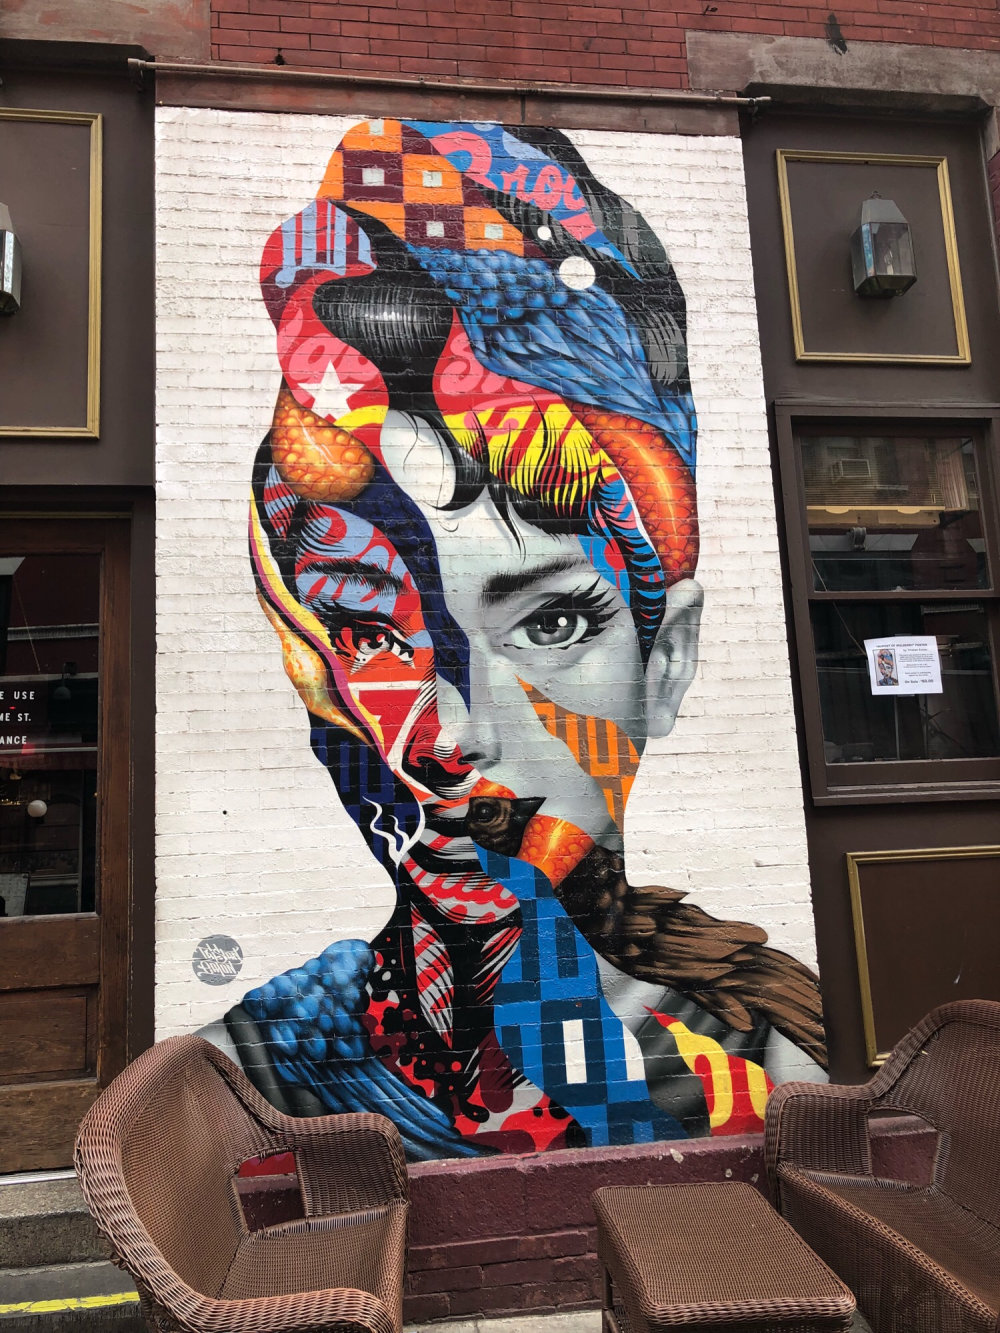 mural in New York by artist Tristan Eaton